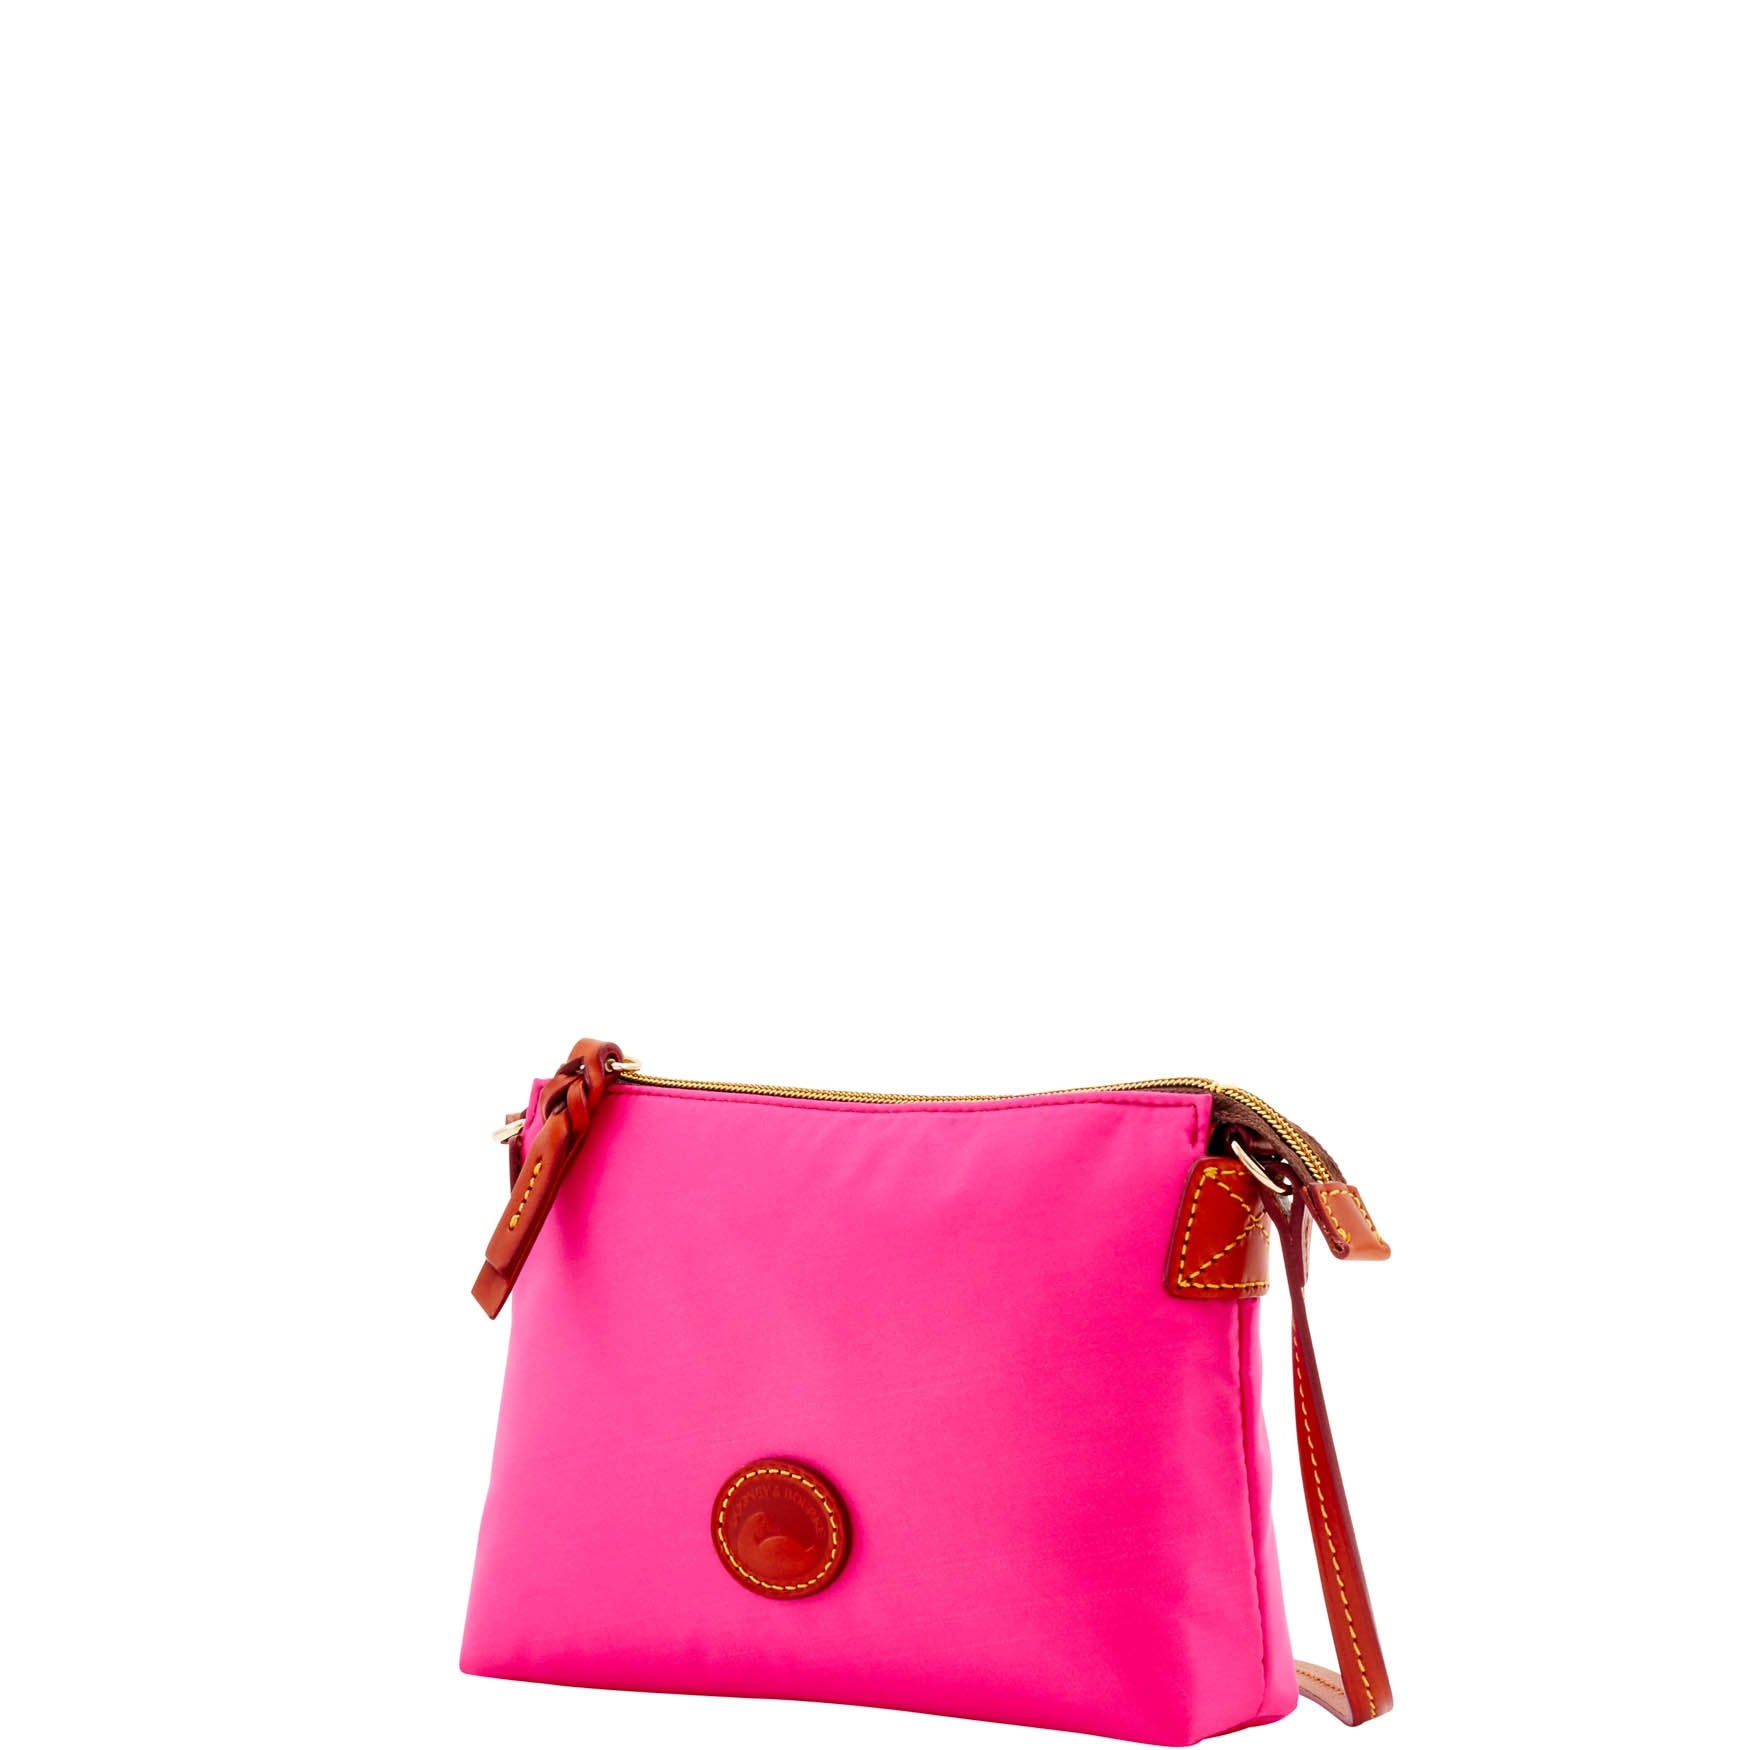 6dc738168 Shop Dooney & Bourke Nylon Crossbody Pouchette (Introduced by Dooney &  Bourke at $88 in Feb 2017) - Free Shipping On Orders Over $45 - Overstock -  14210330